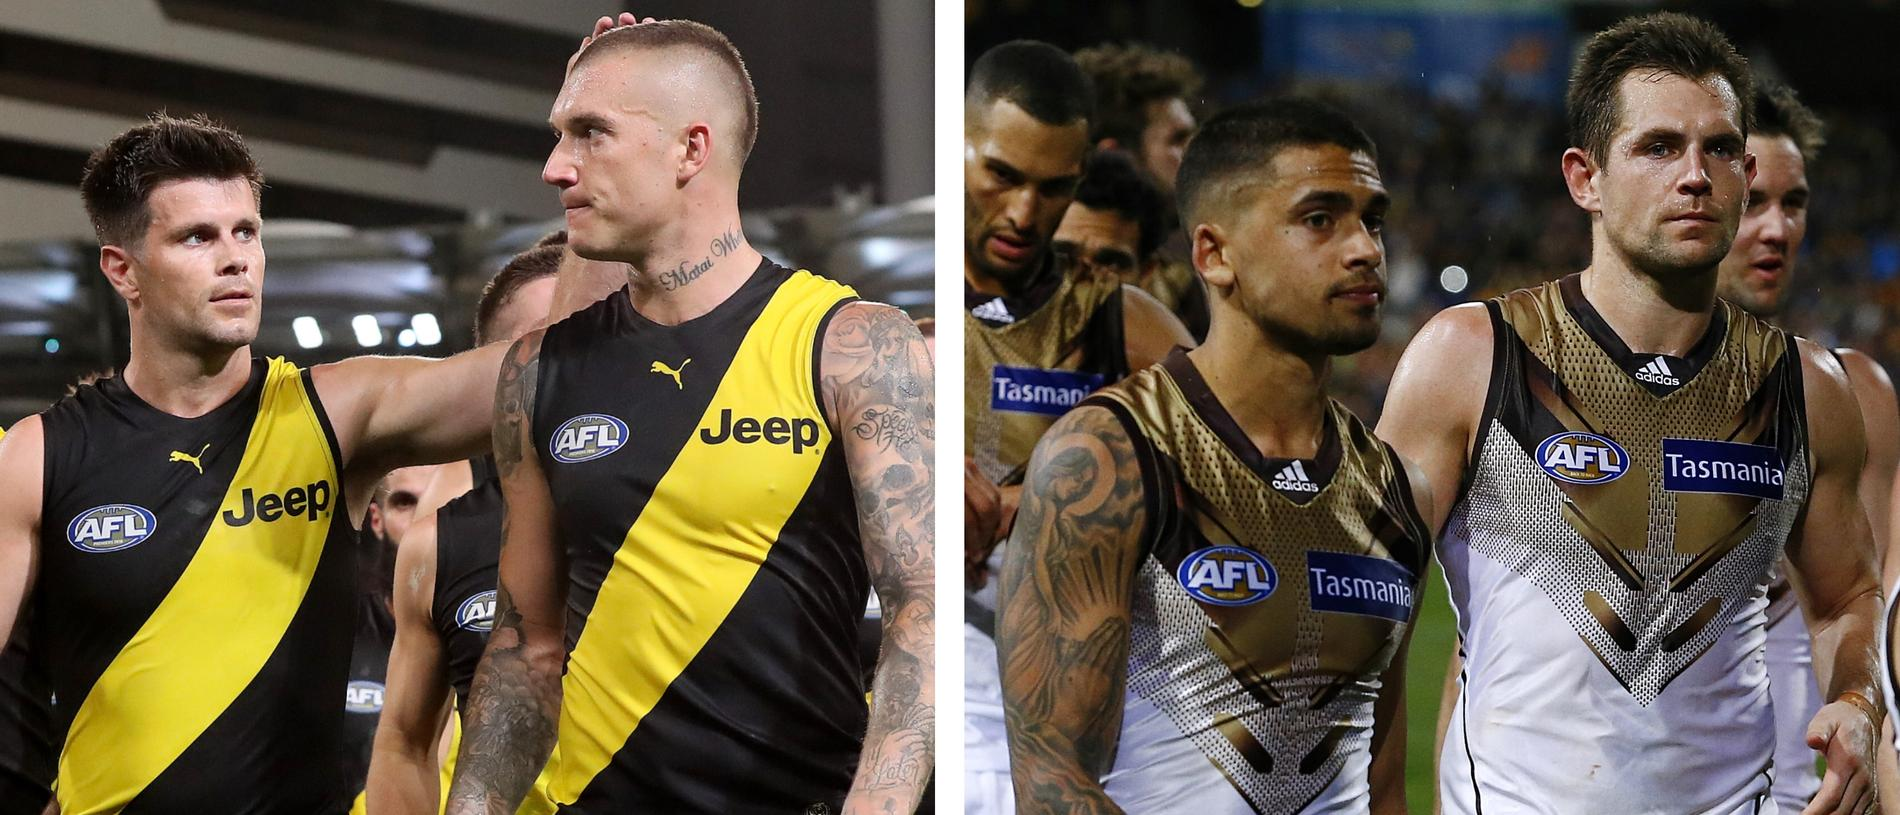 Richmond lost its first final, but so did Hawthorn in 2015 on route to a flag. TALKING POINTS